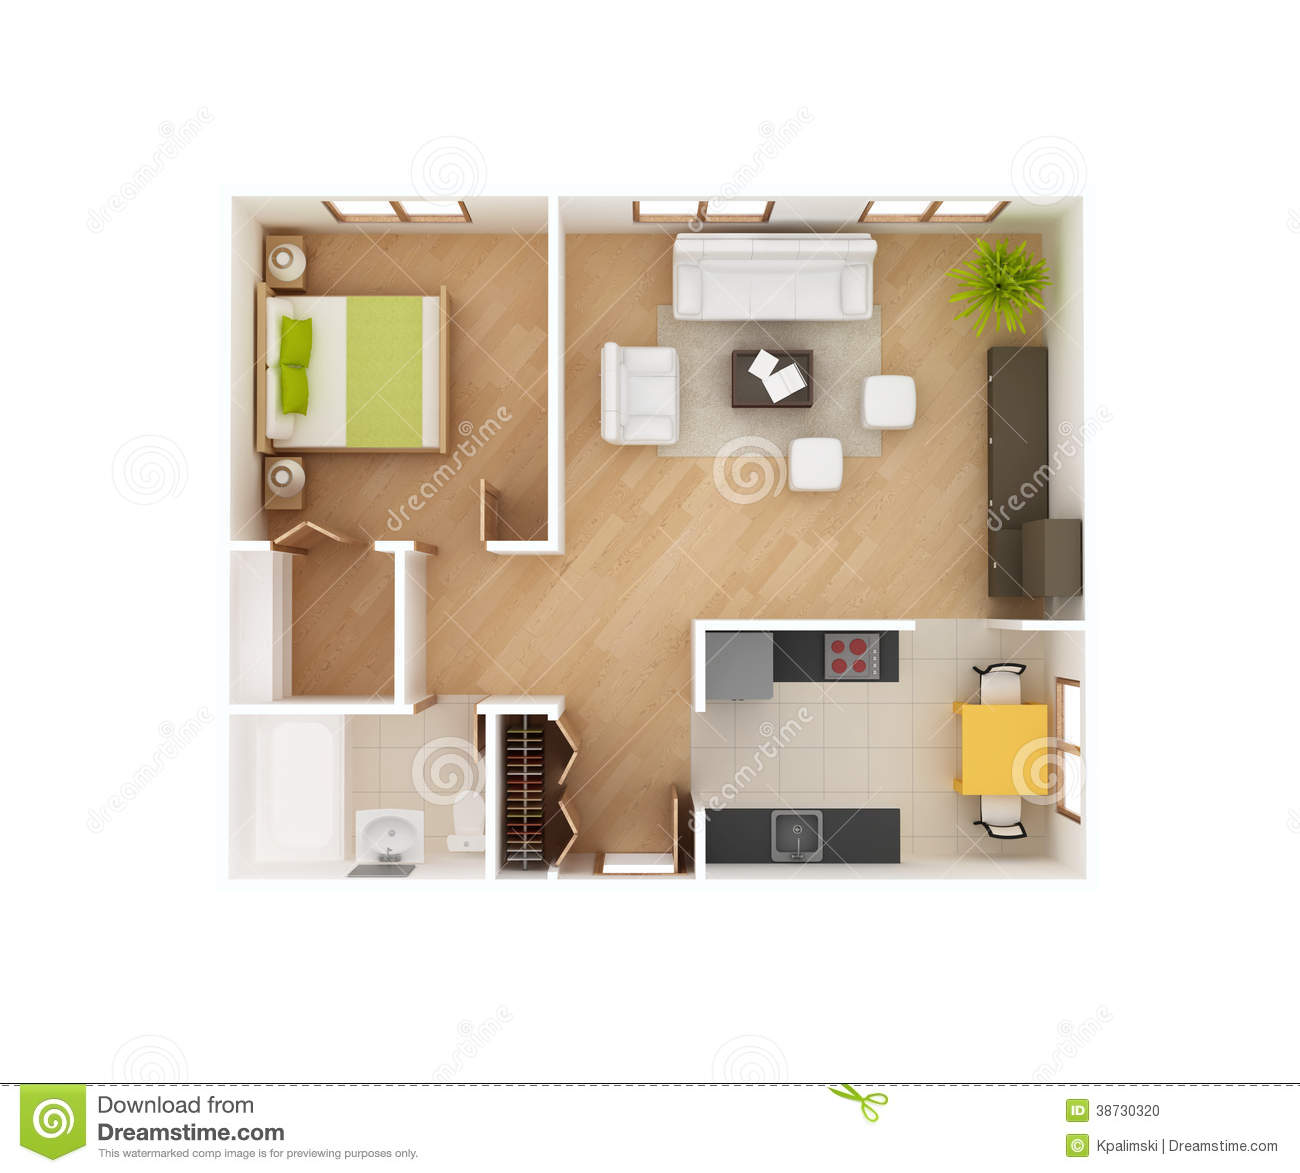 Basic 3d house floor plan top view stock illustration for Simple one room house plans